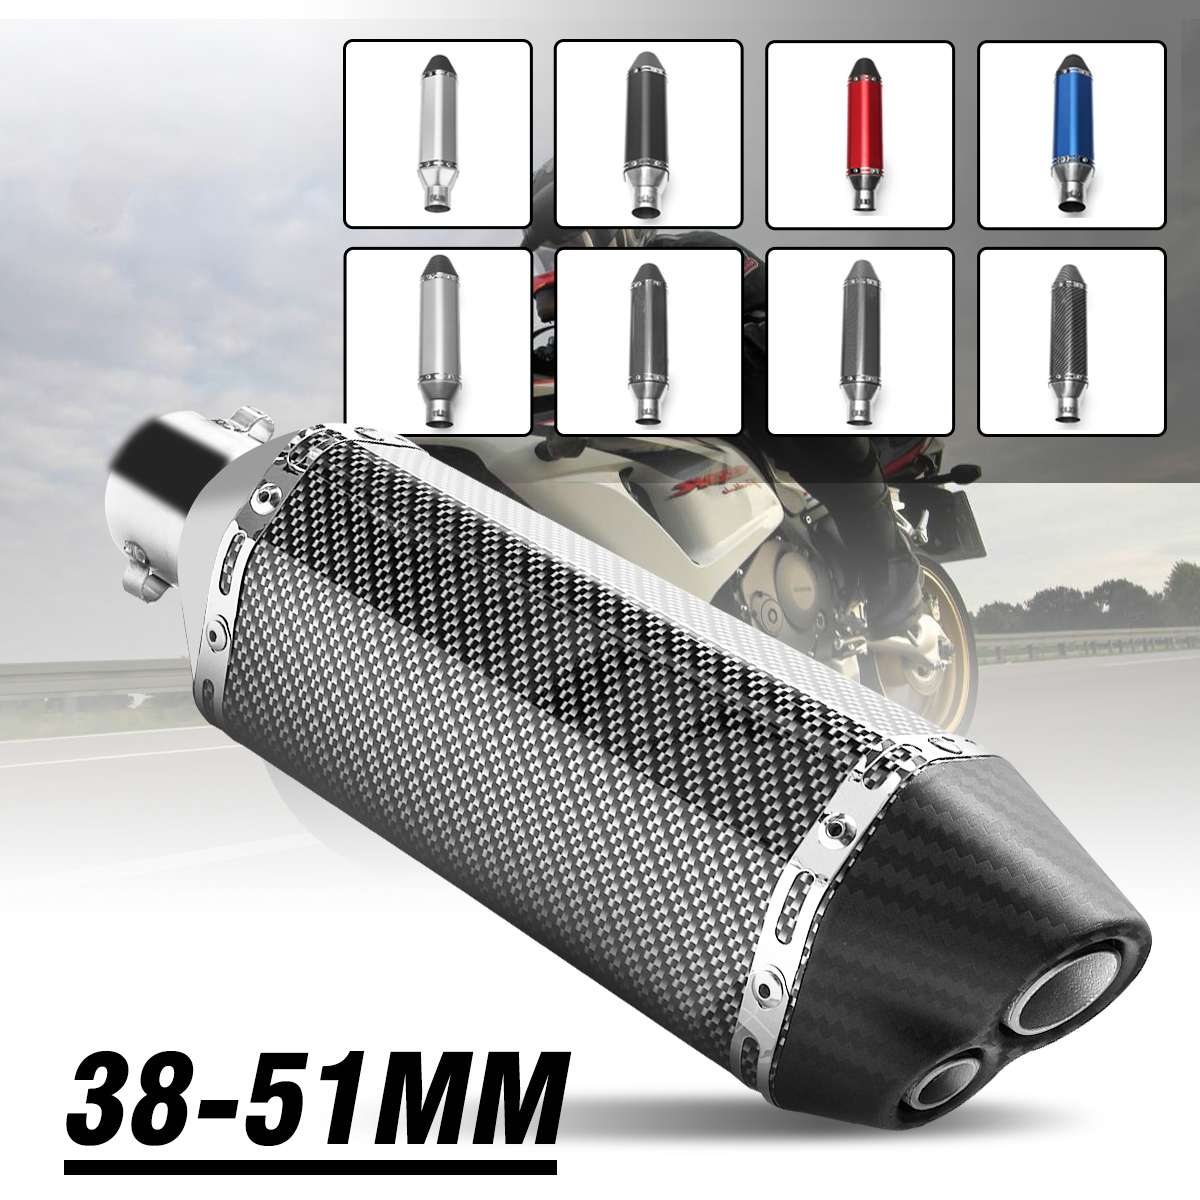 38-51mm 365mm Carbon Stainless Steel Motorcycle <font><b>Exhaust</b></font> Muffler Pipe Double Air Outlet For R6 Z650 MT07 Z900 CBR1000 KTM <font><b>R3</b></font> R25 image